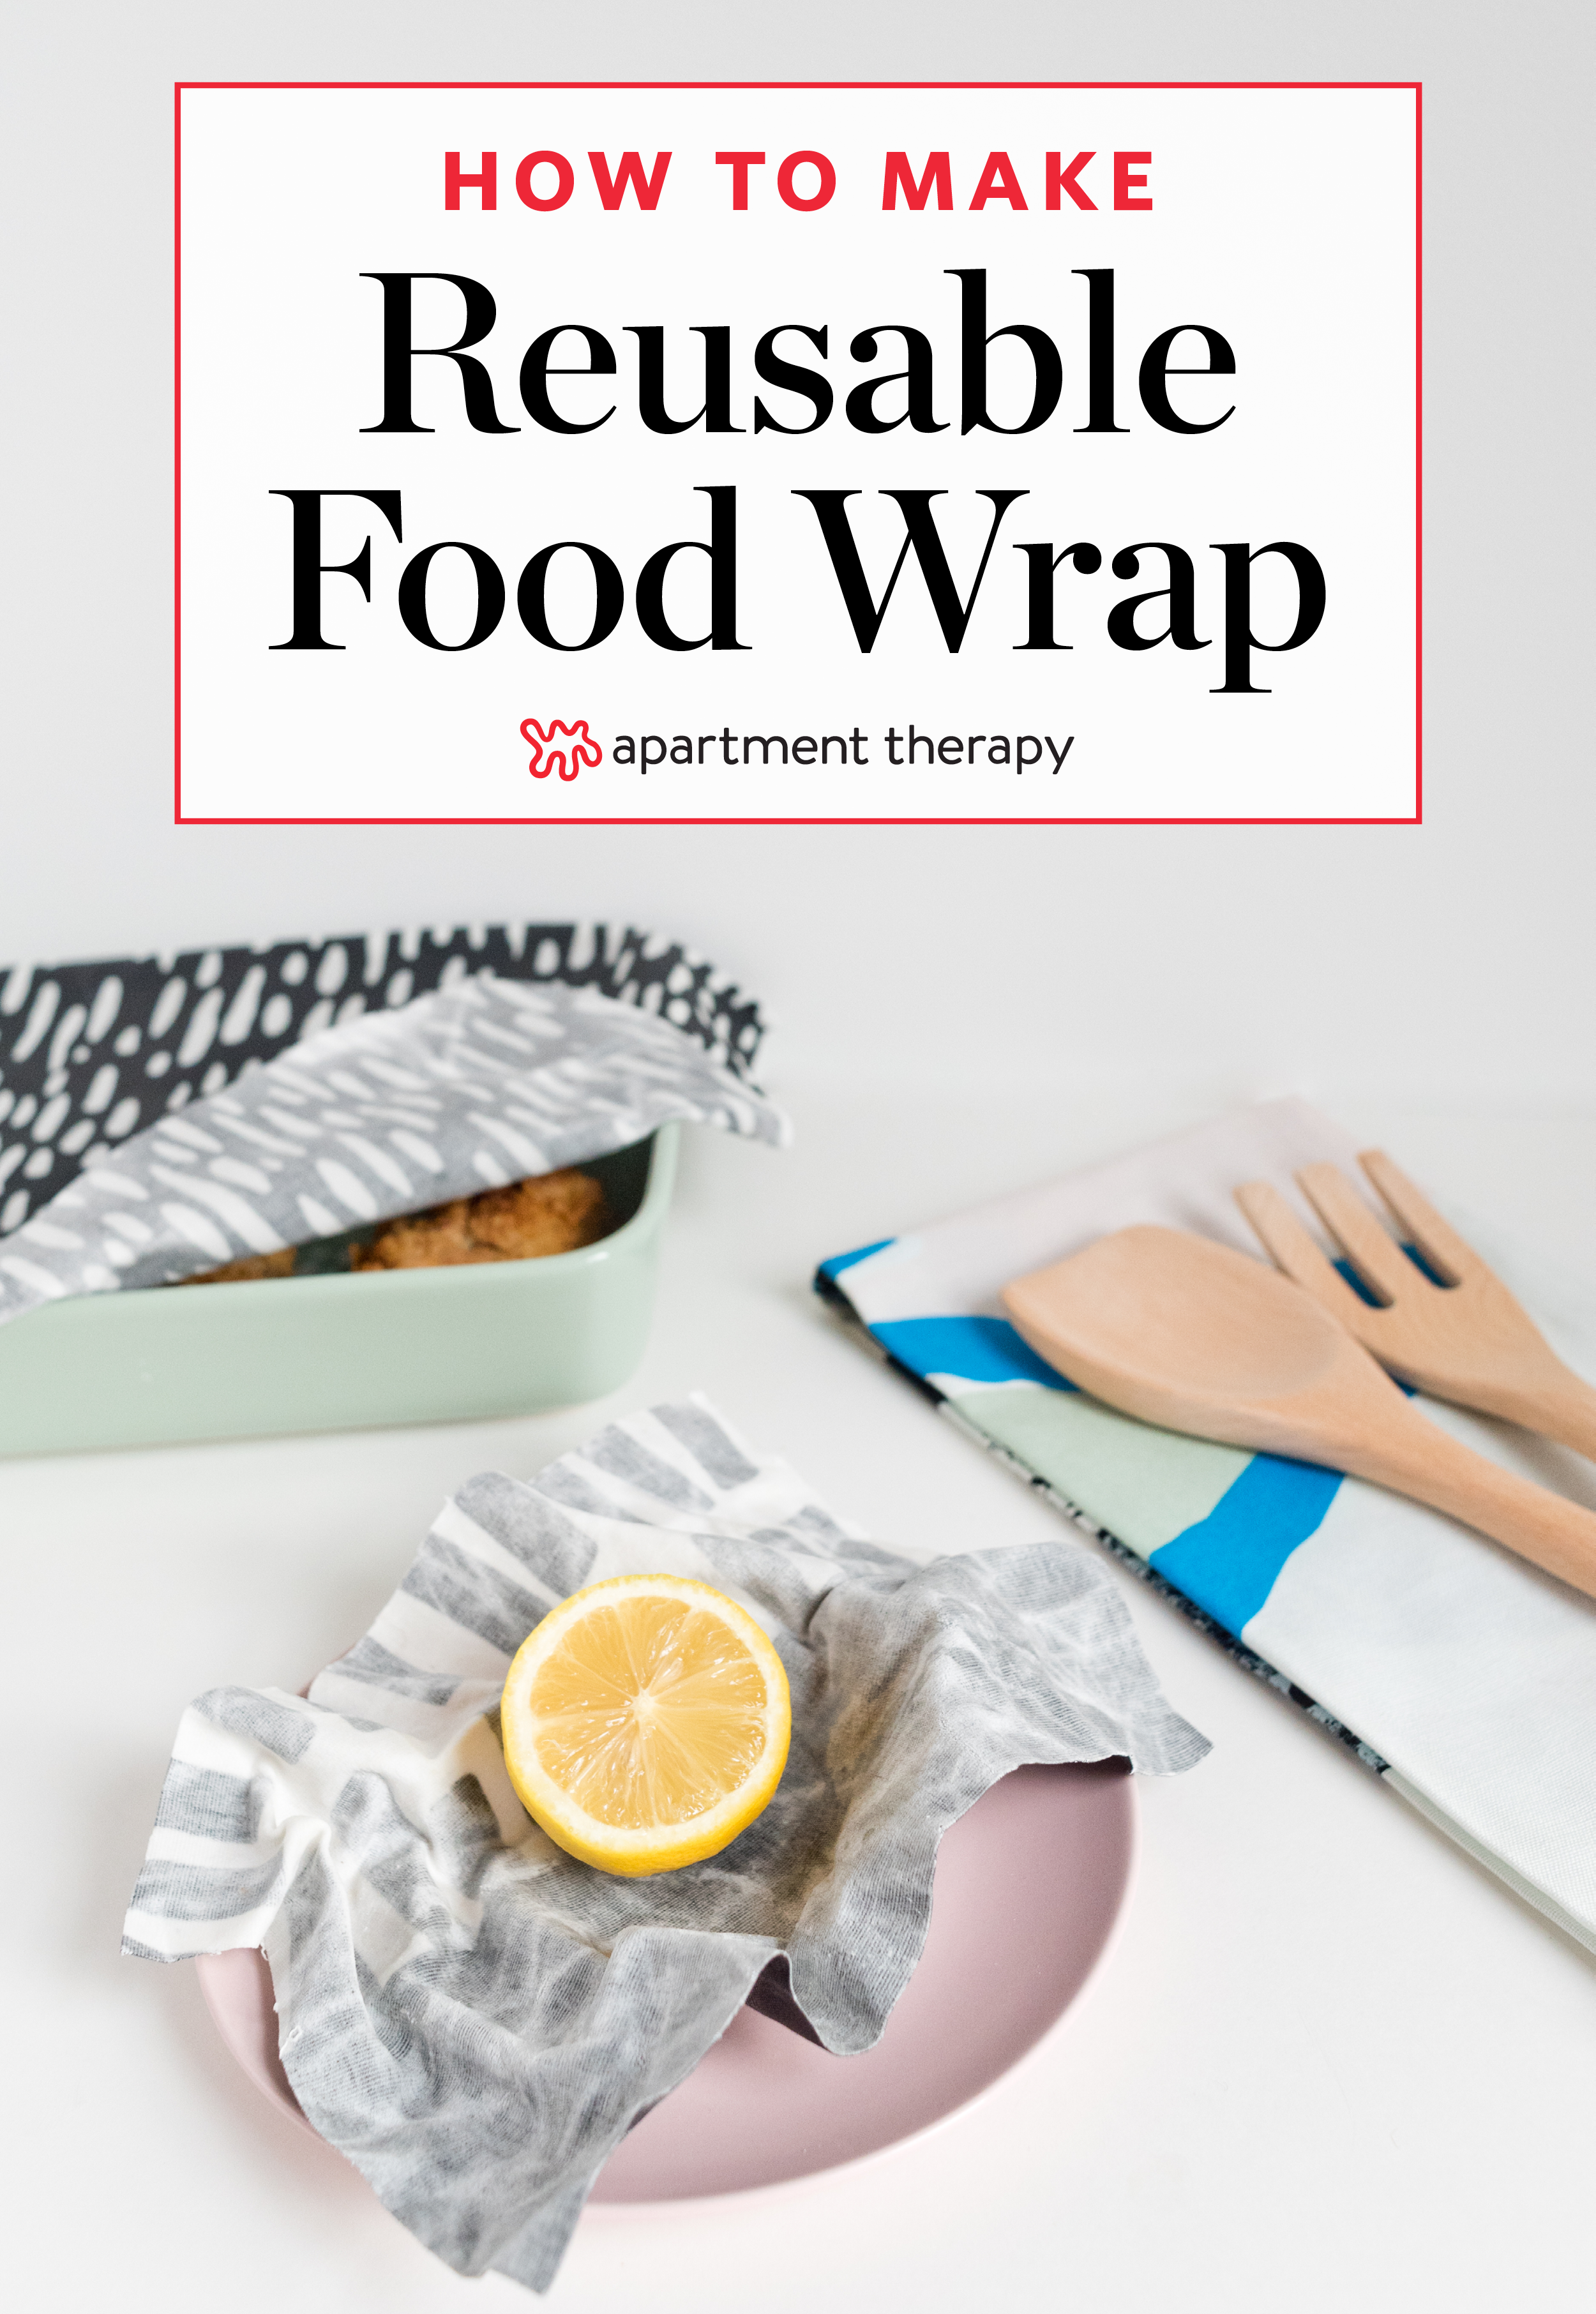 Bee's Wrap: Review of this Plastic Wrap Alternative